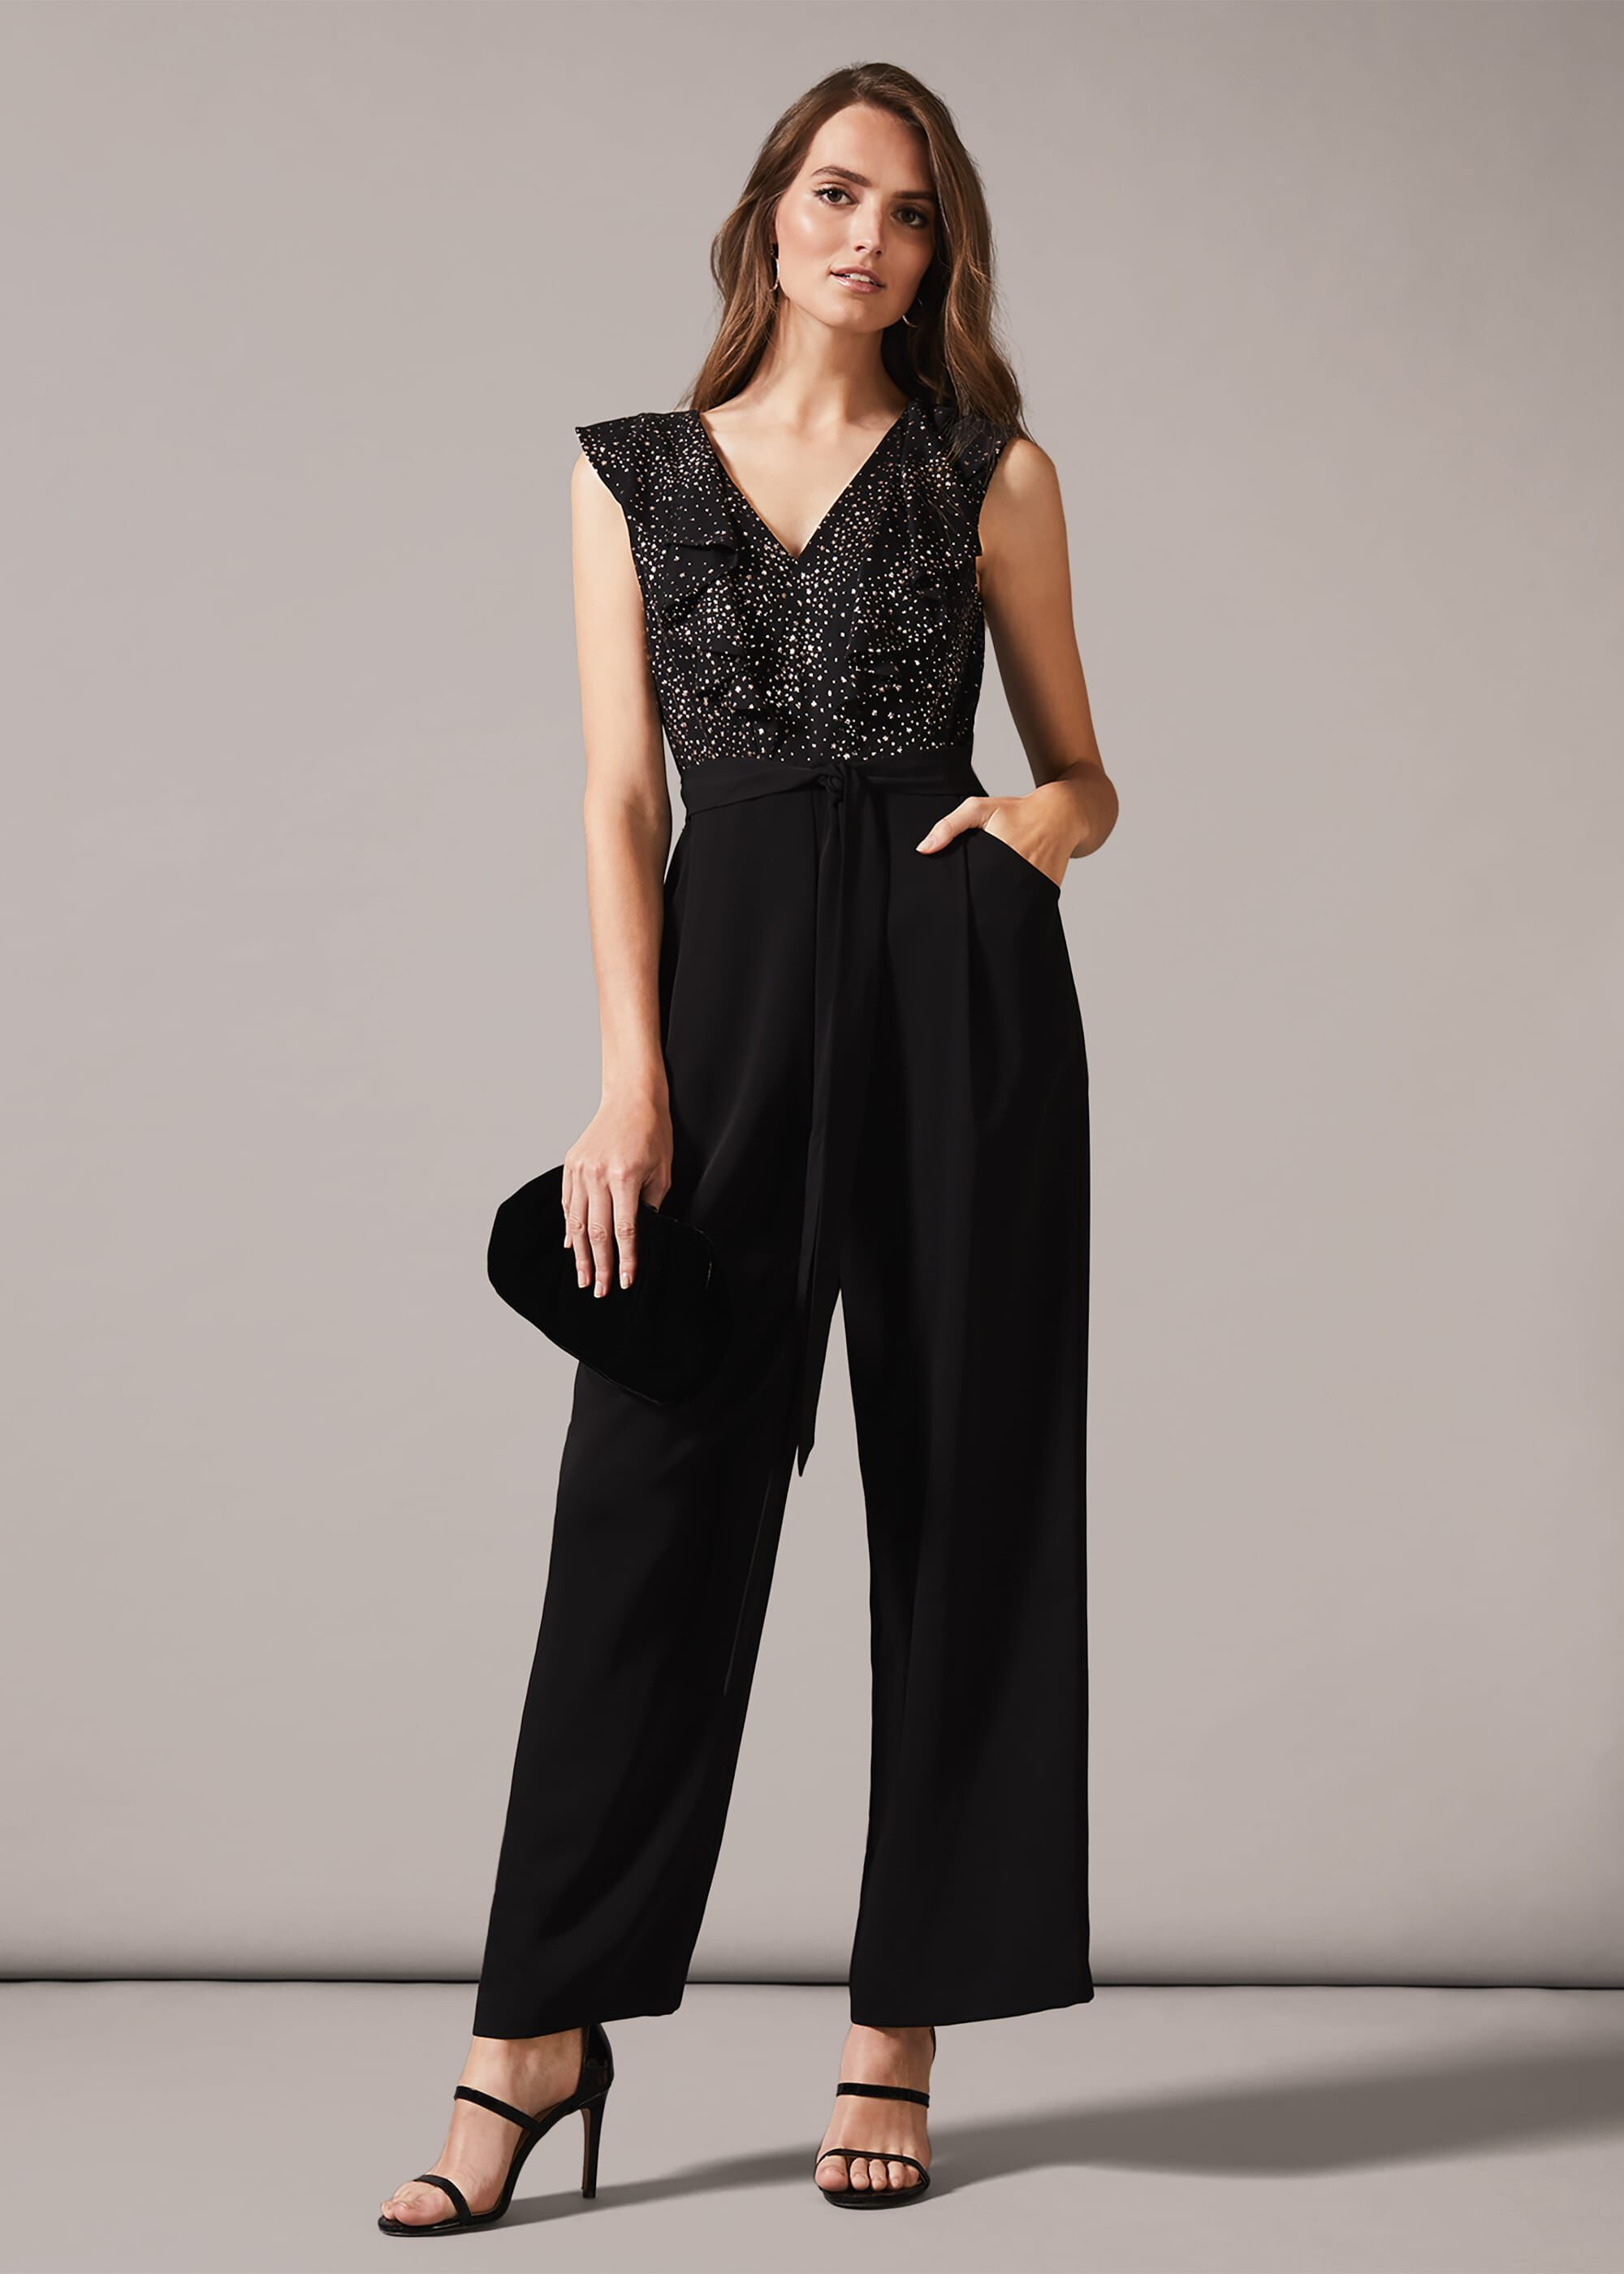 Phase Eight Garcia Star Print Jumpsuit, Black, Jumpsuit